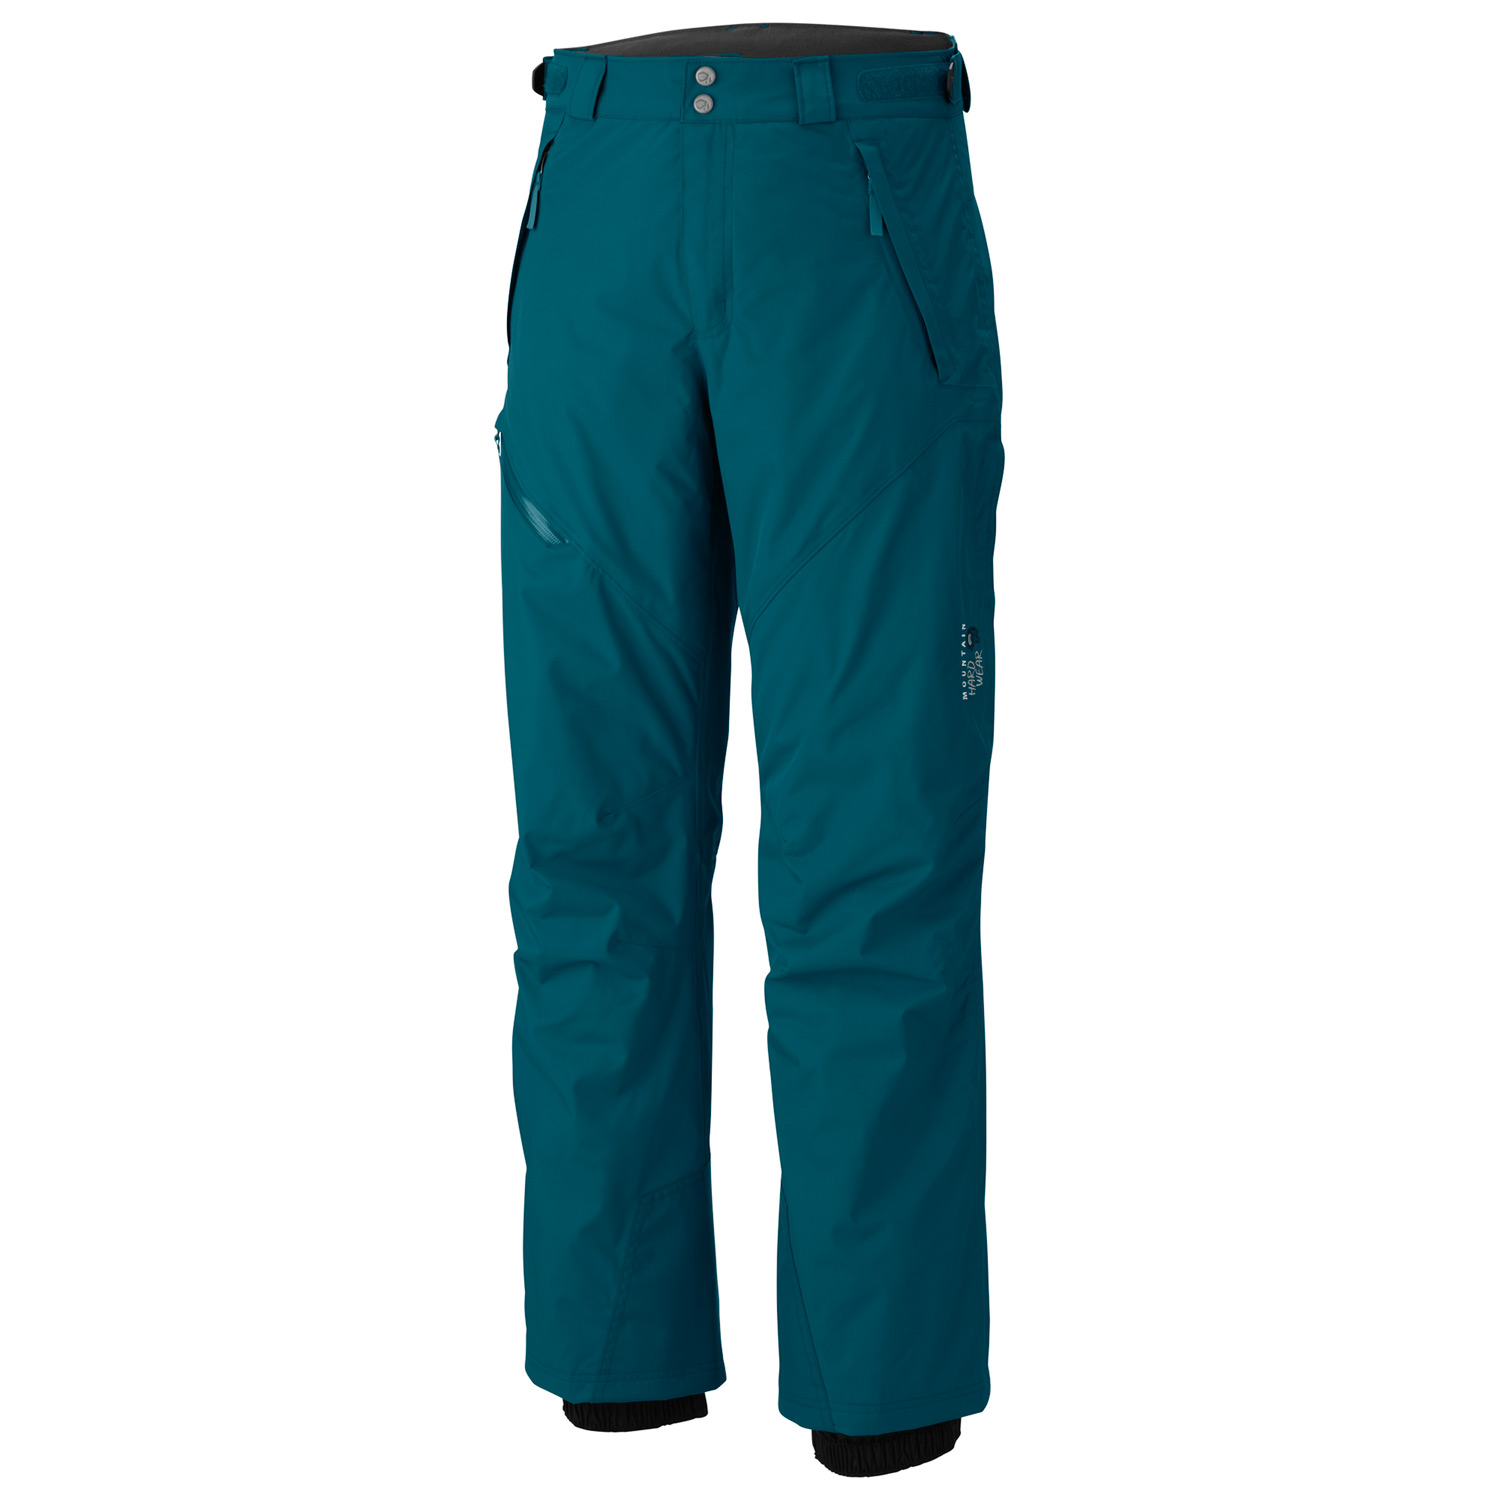 Ski Lap on: Lightweight, with great breathability so you won't sweat out. Thigh vents, edge guards and powder cuffs with bonus fleece lined hand pockets. A reliable, waterproof and windproof ski shell pant with zippered thigh vents to keep you cool on long tram rides. - $115.95